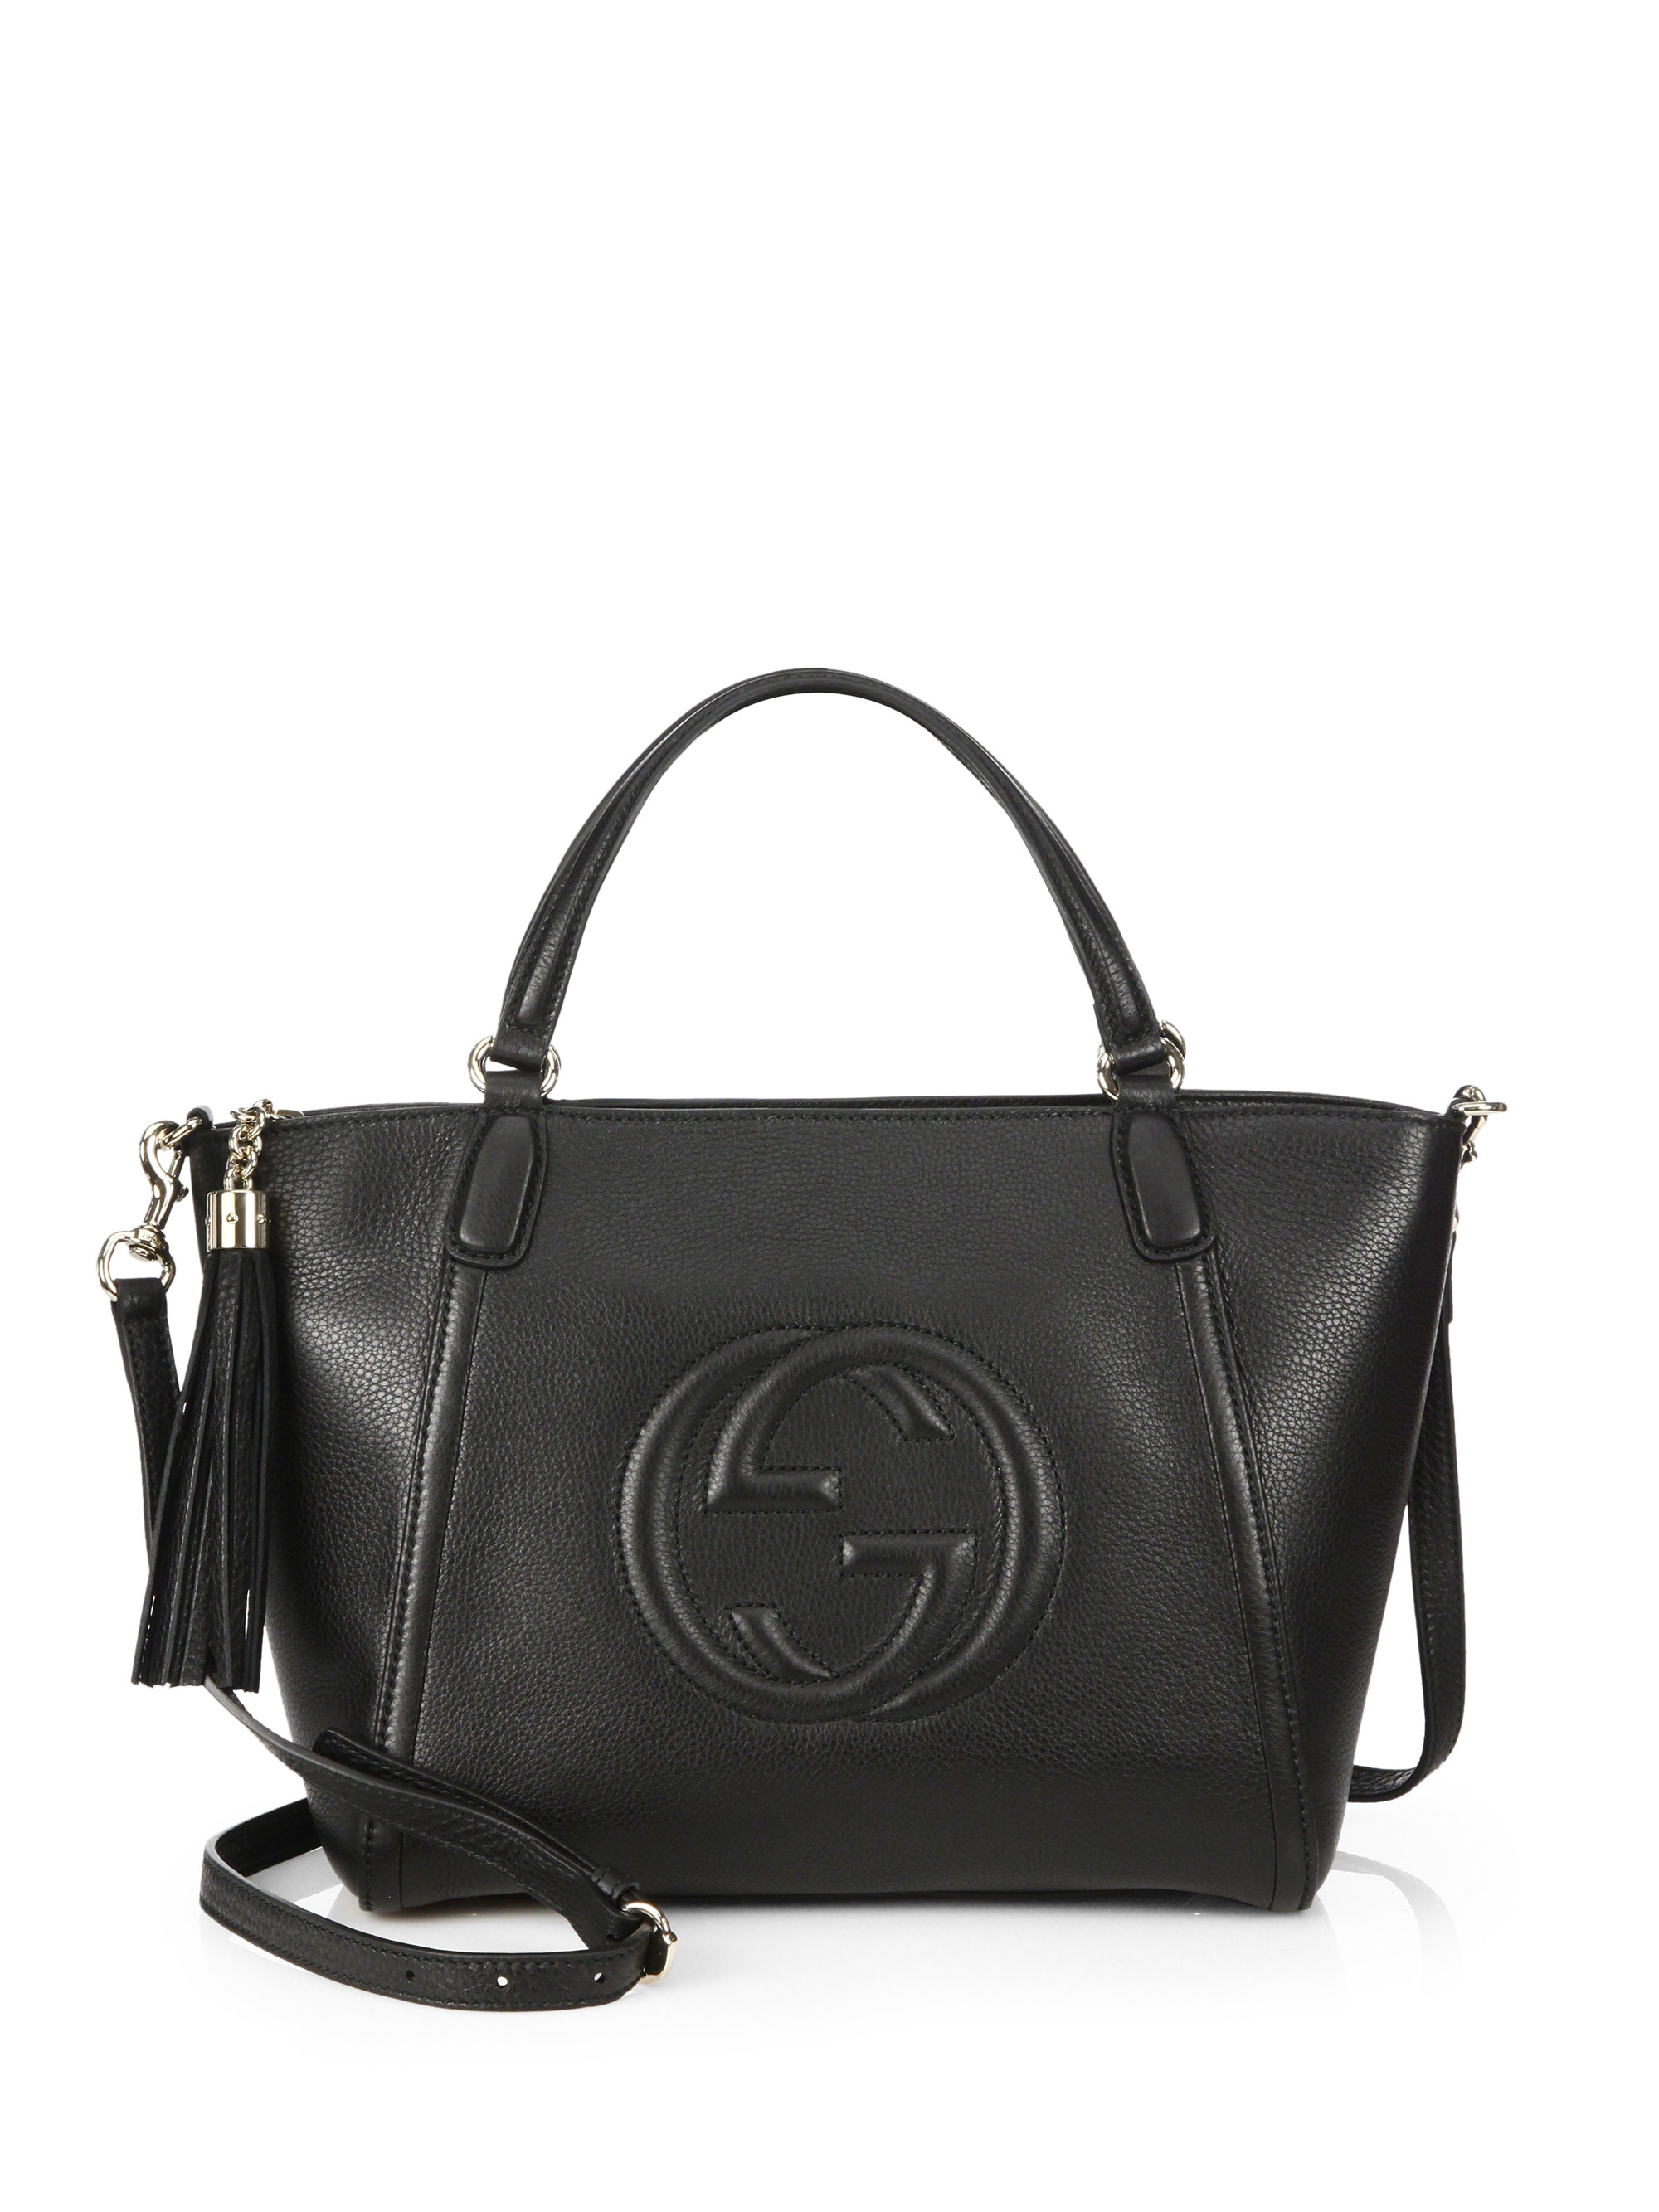 ee439bdf74cae8 Gucci Soho Leather Top Handle Bag Black | Stanford Center for ...